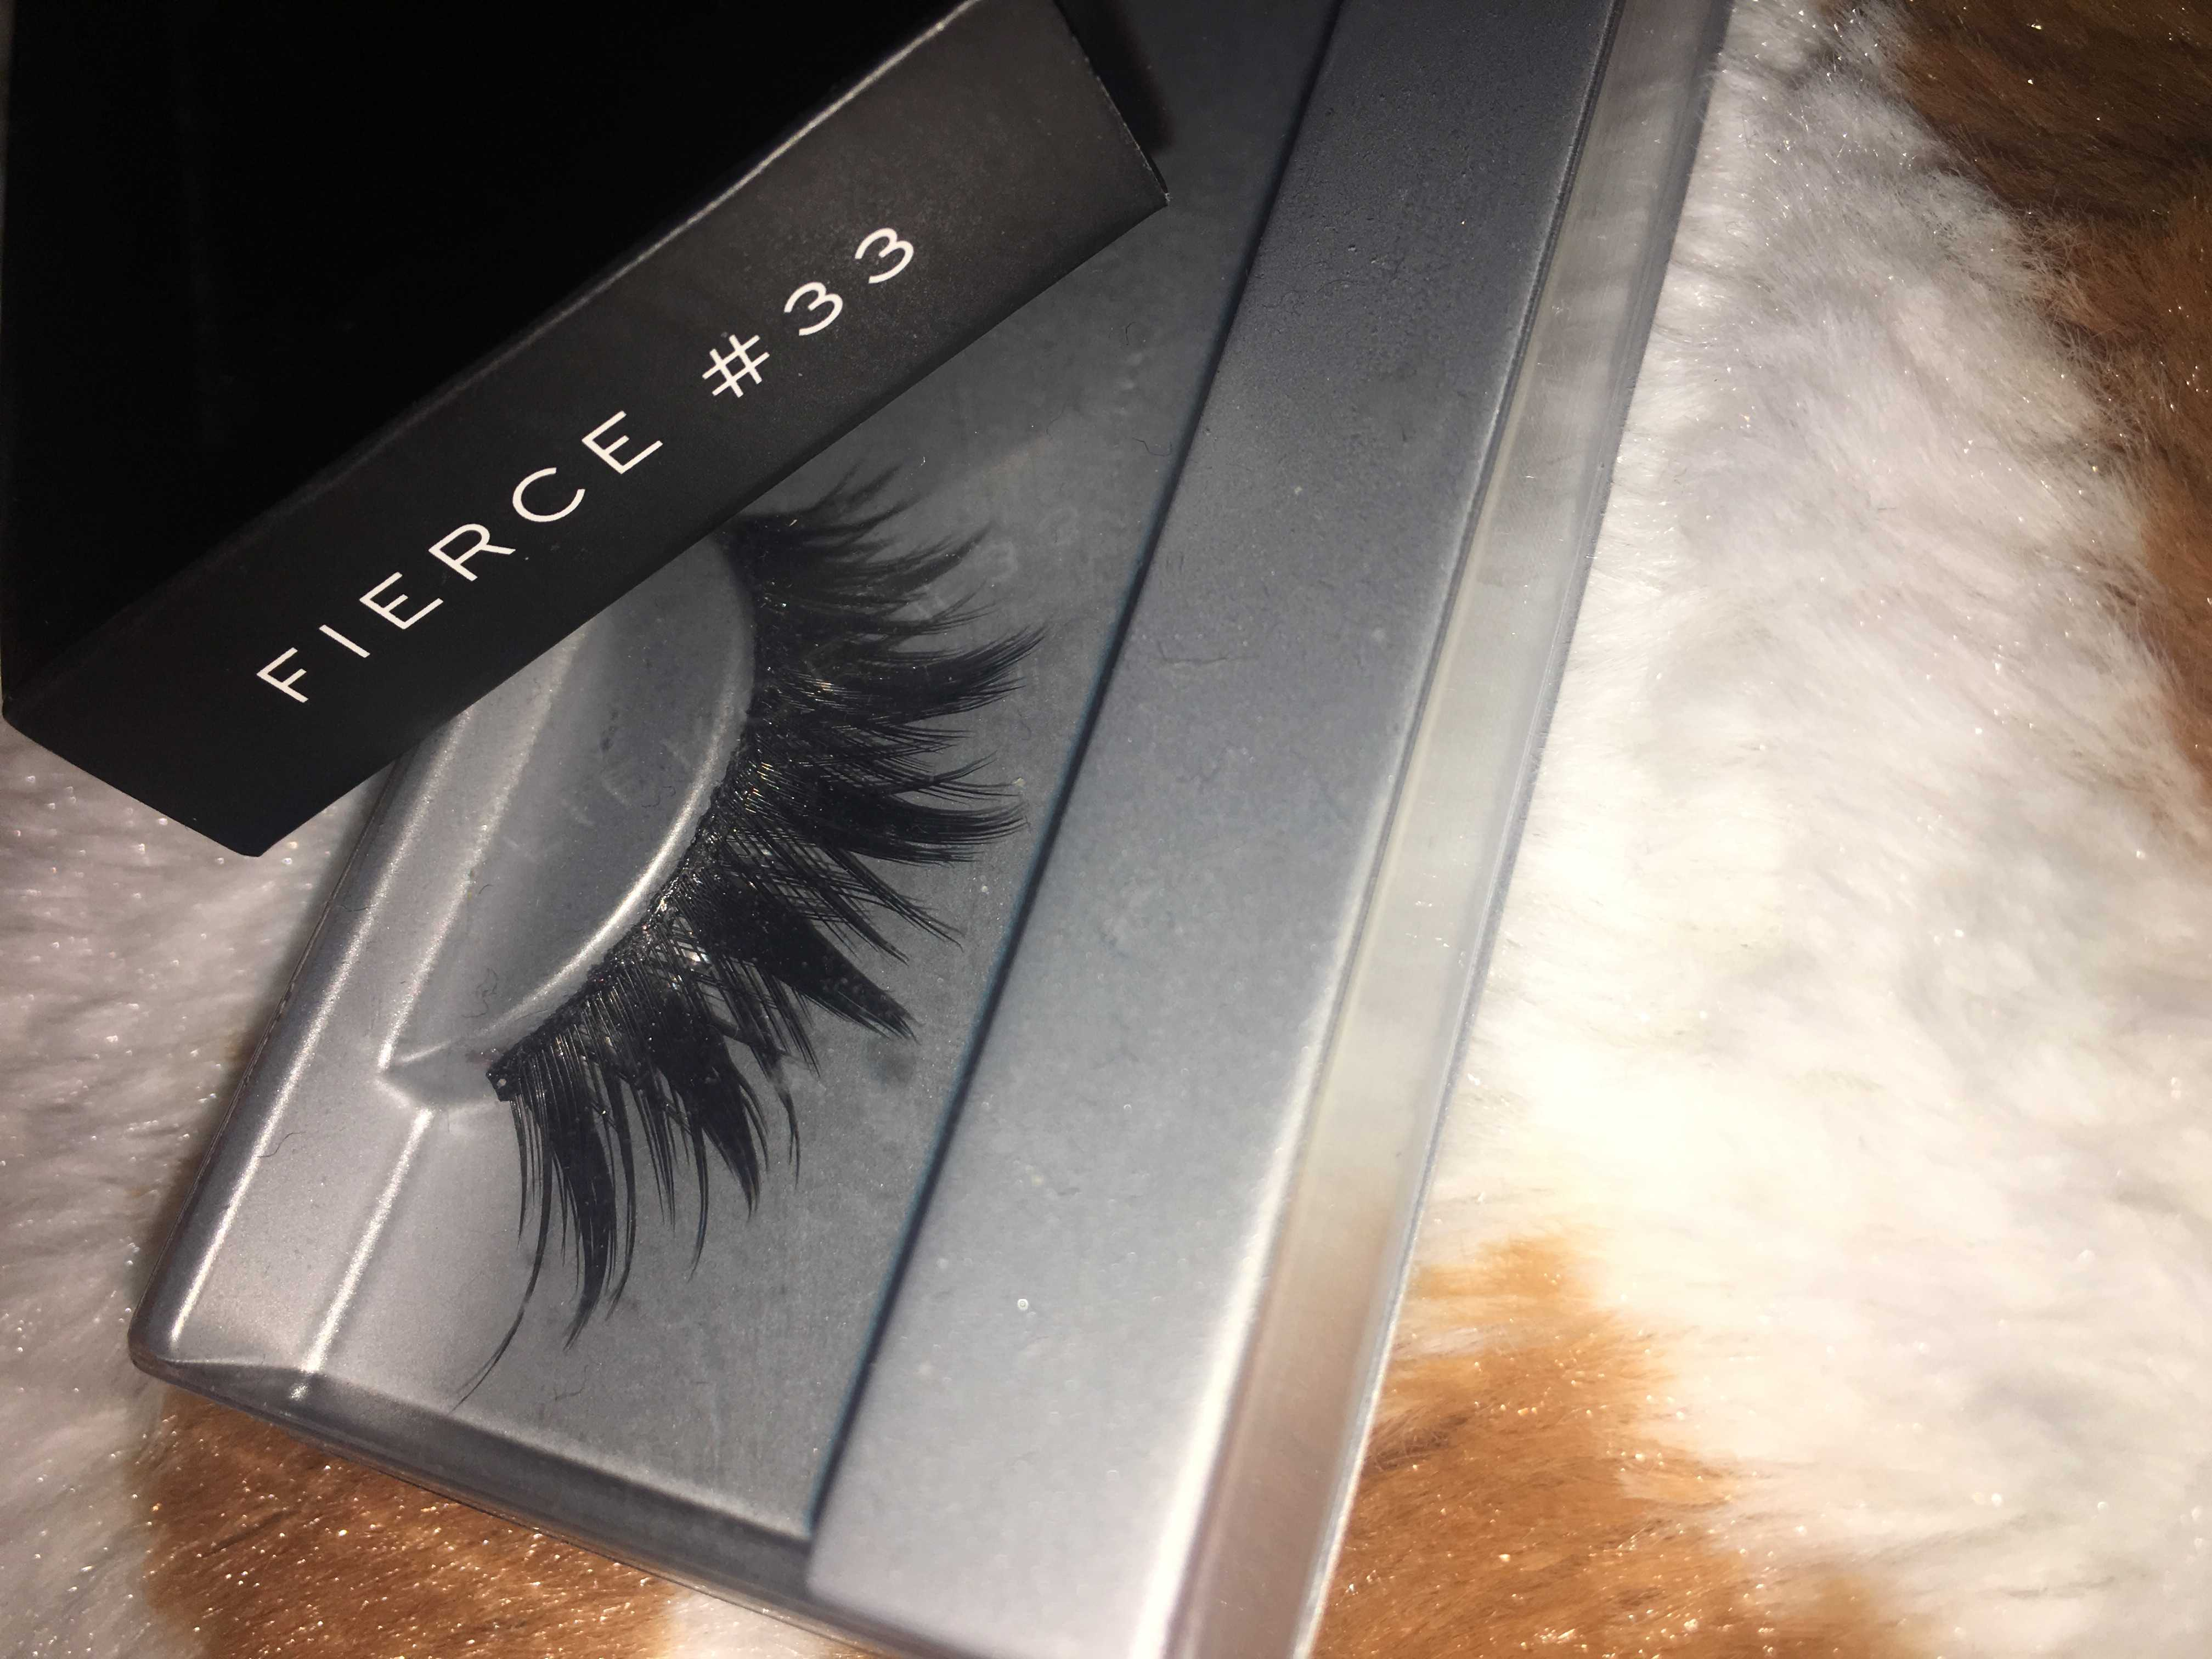 67307e7e87a False eyelashes can be used to create dramatic eye looks, as well as to  create natural, yet flirty looks. When buying false lashes, it is most  beneficial to ...